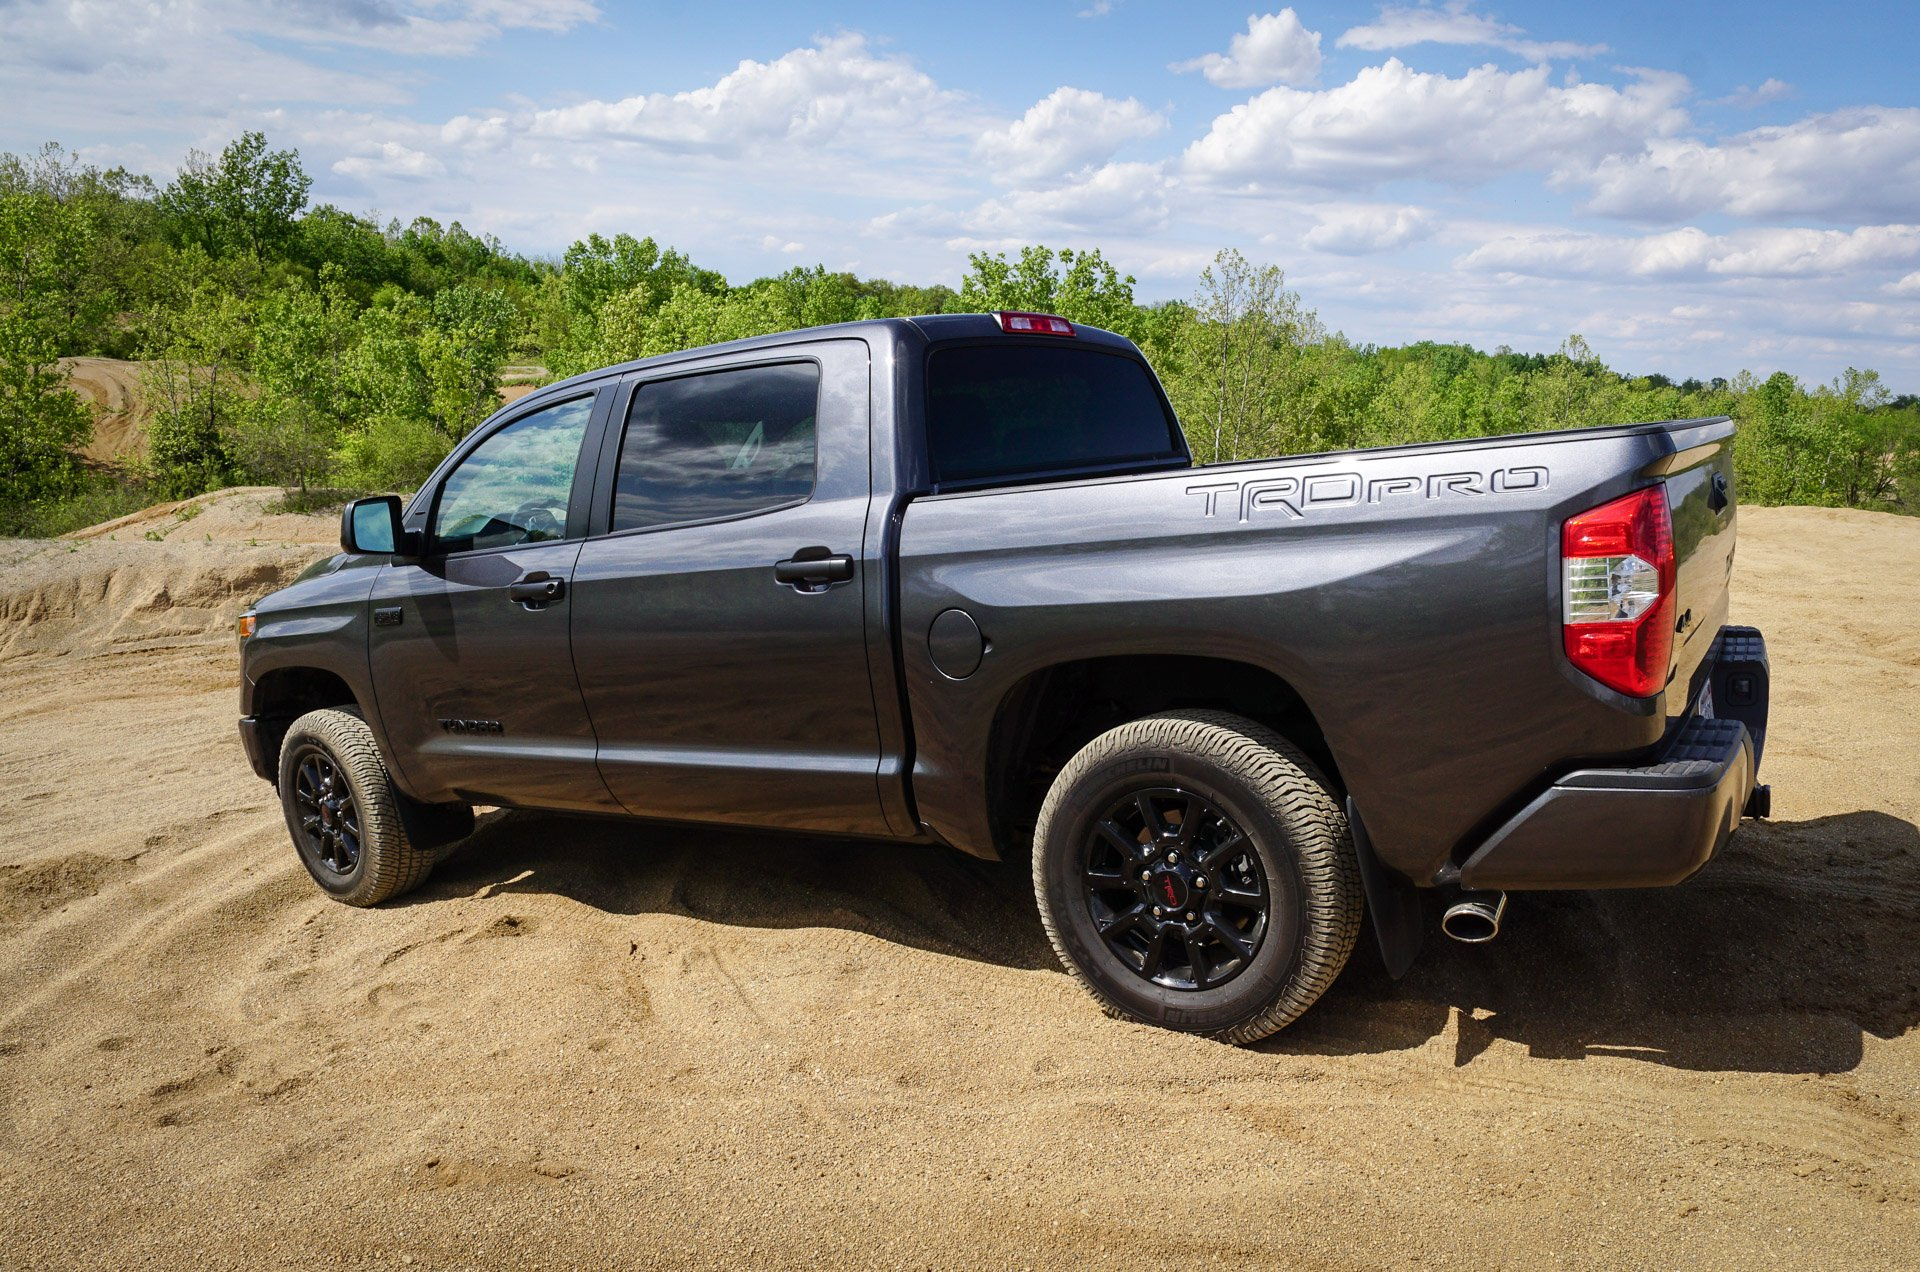 Off-Road: 2016 Toyota Tundra TRD Pro - 95 Octane